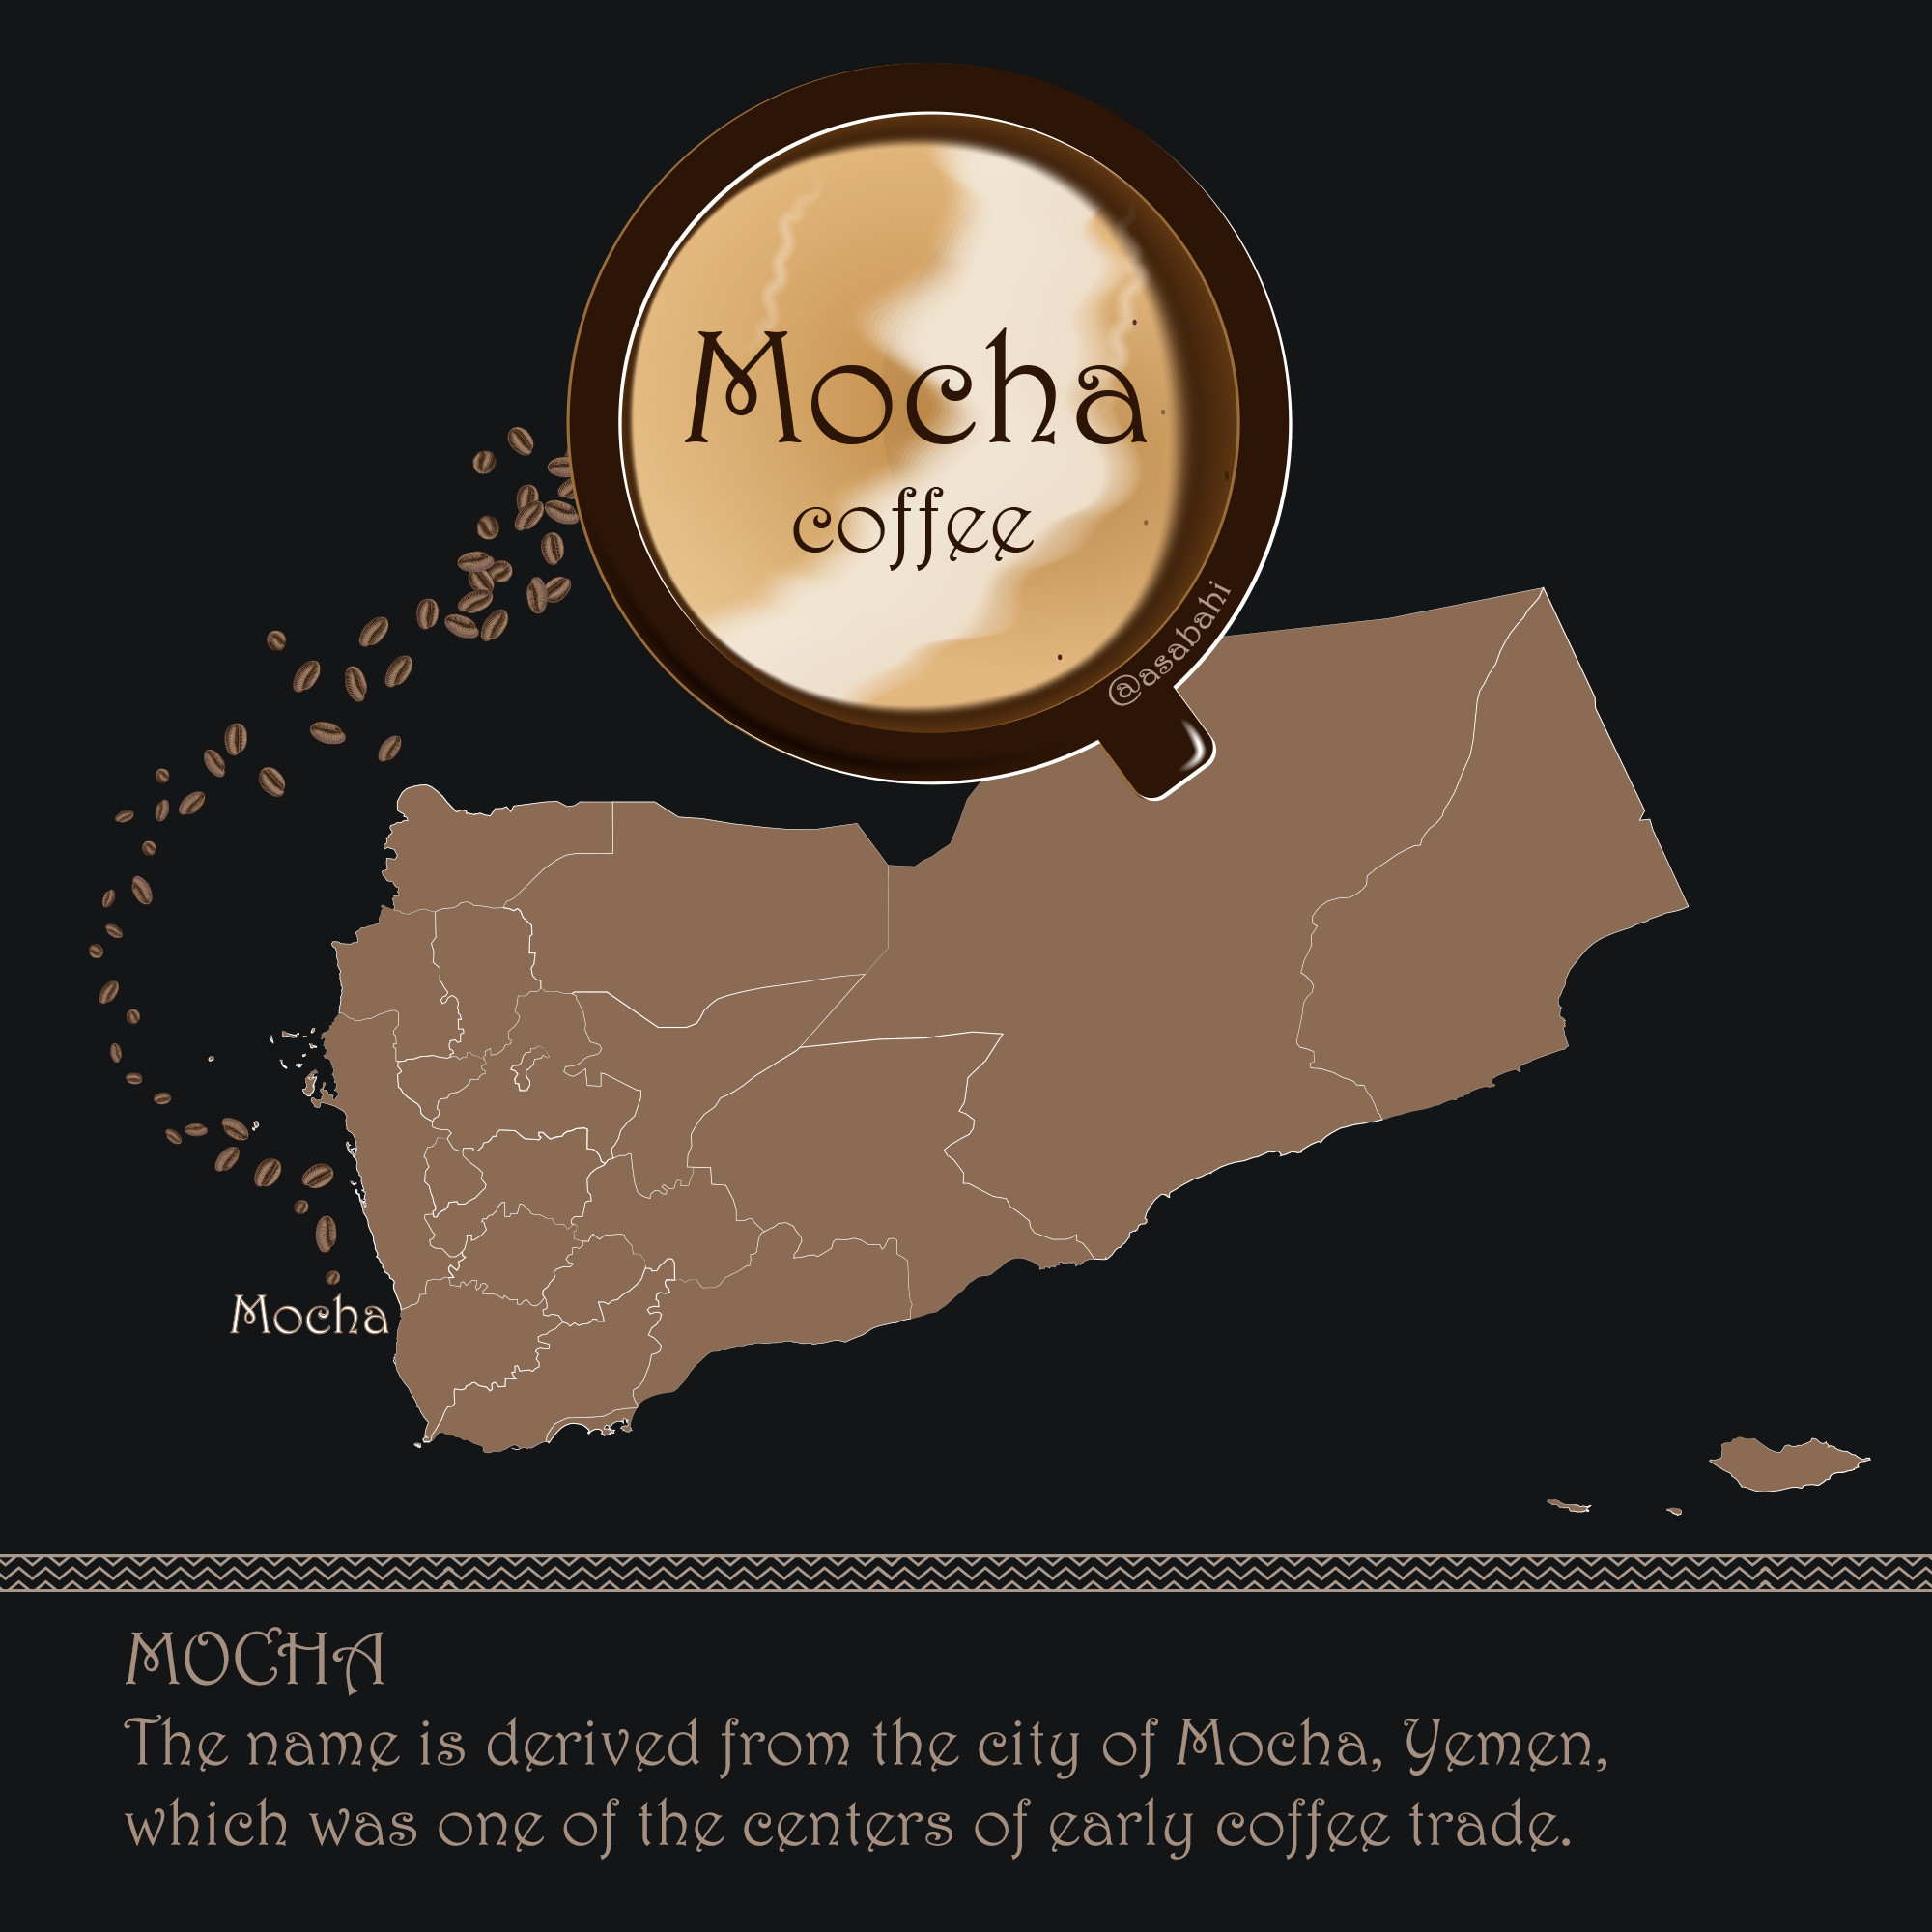 mocha The name is derived from the city of Mocha, Yemen, which was one of the centers of early coffee trade.